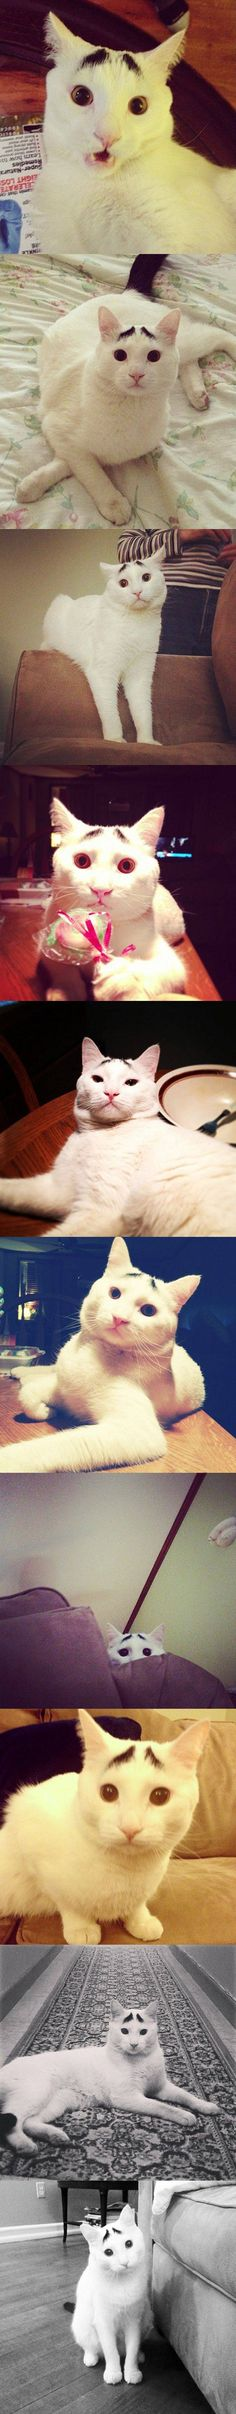 Sam, the famous cat with real eyebrows.  Makes me want to draw some on my cat for my own amusement.... is that bad?